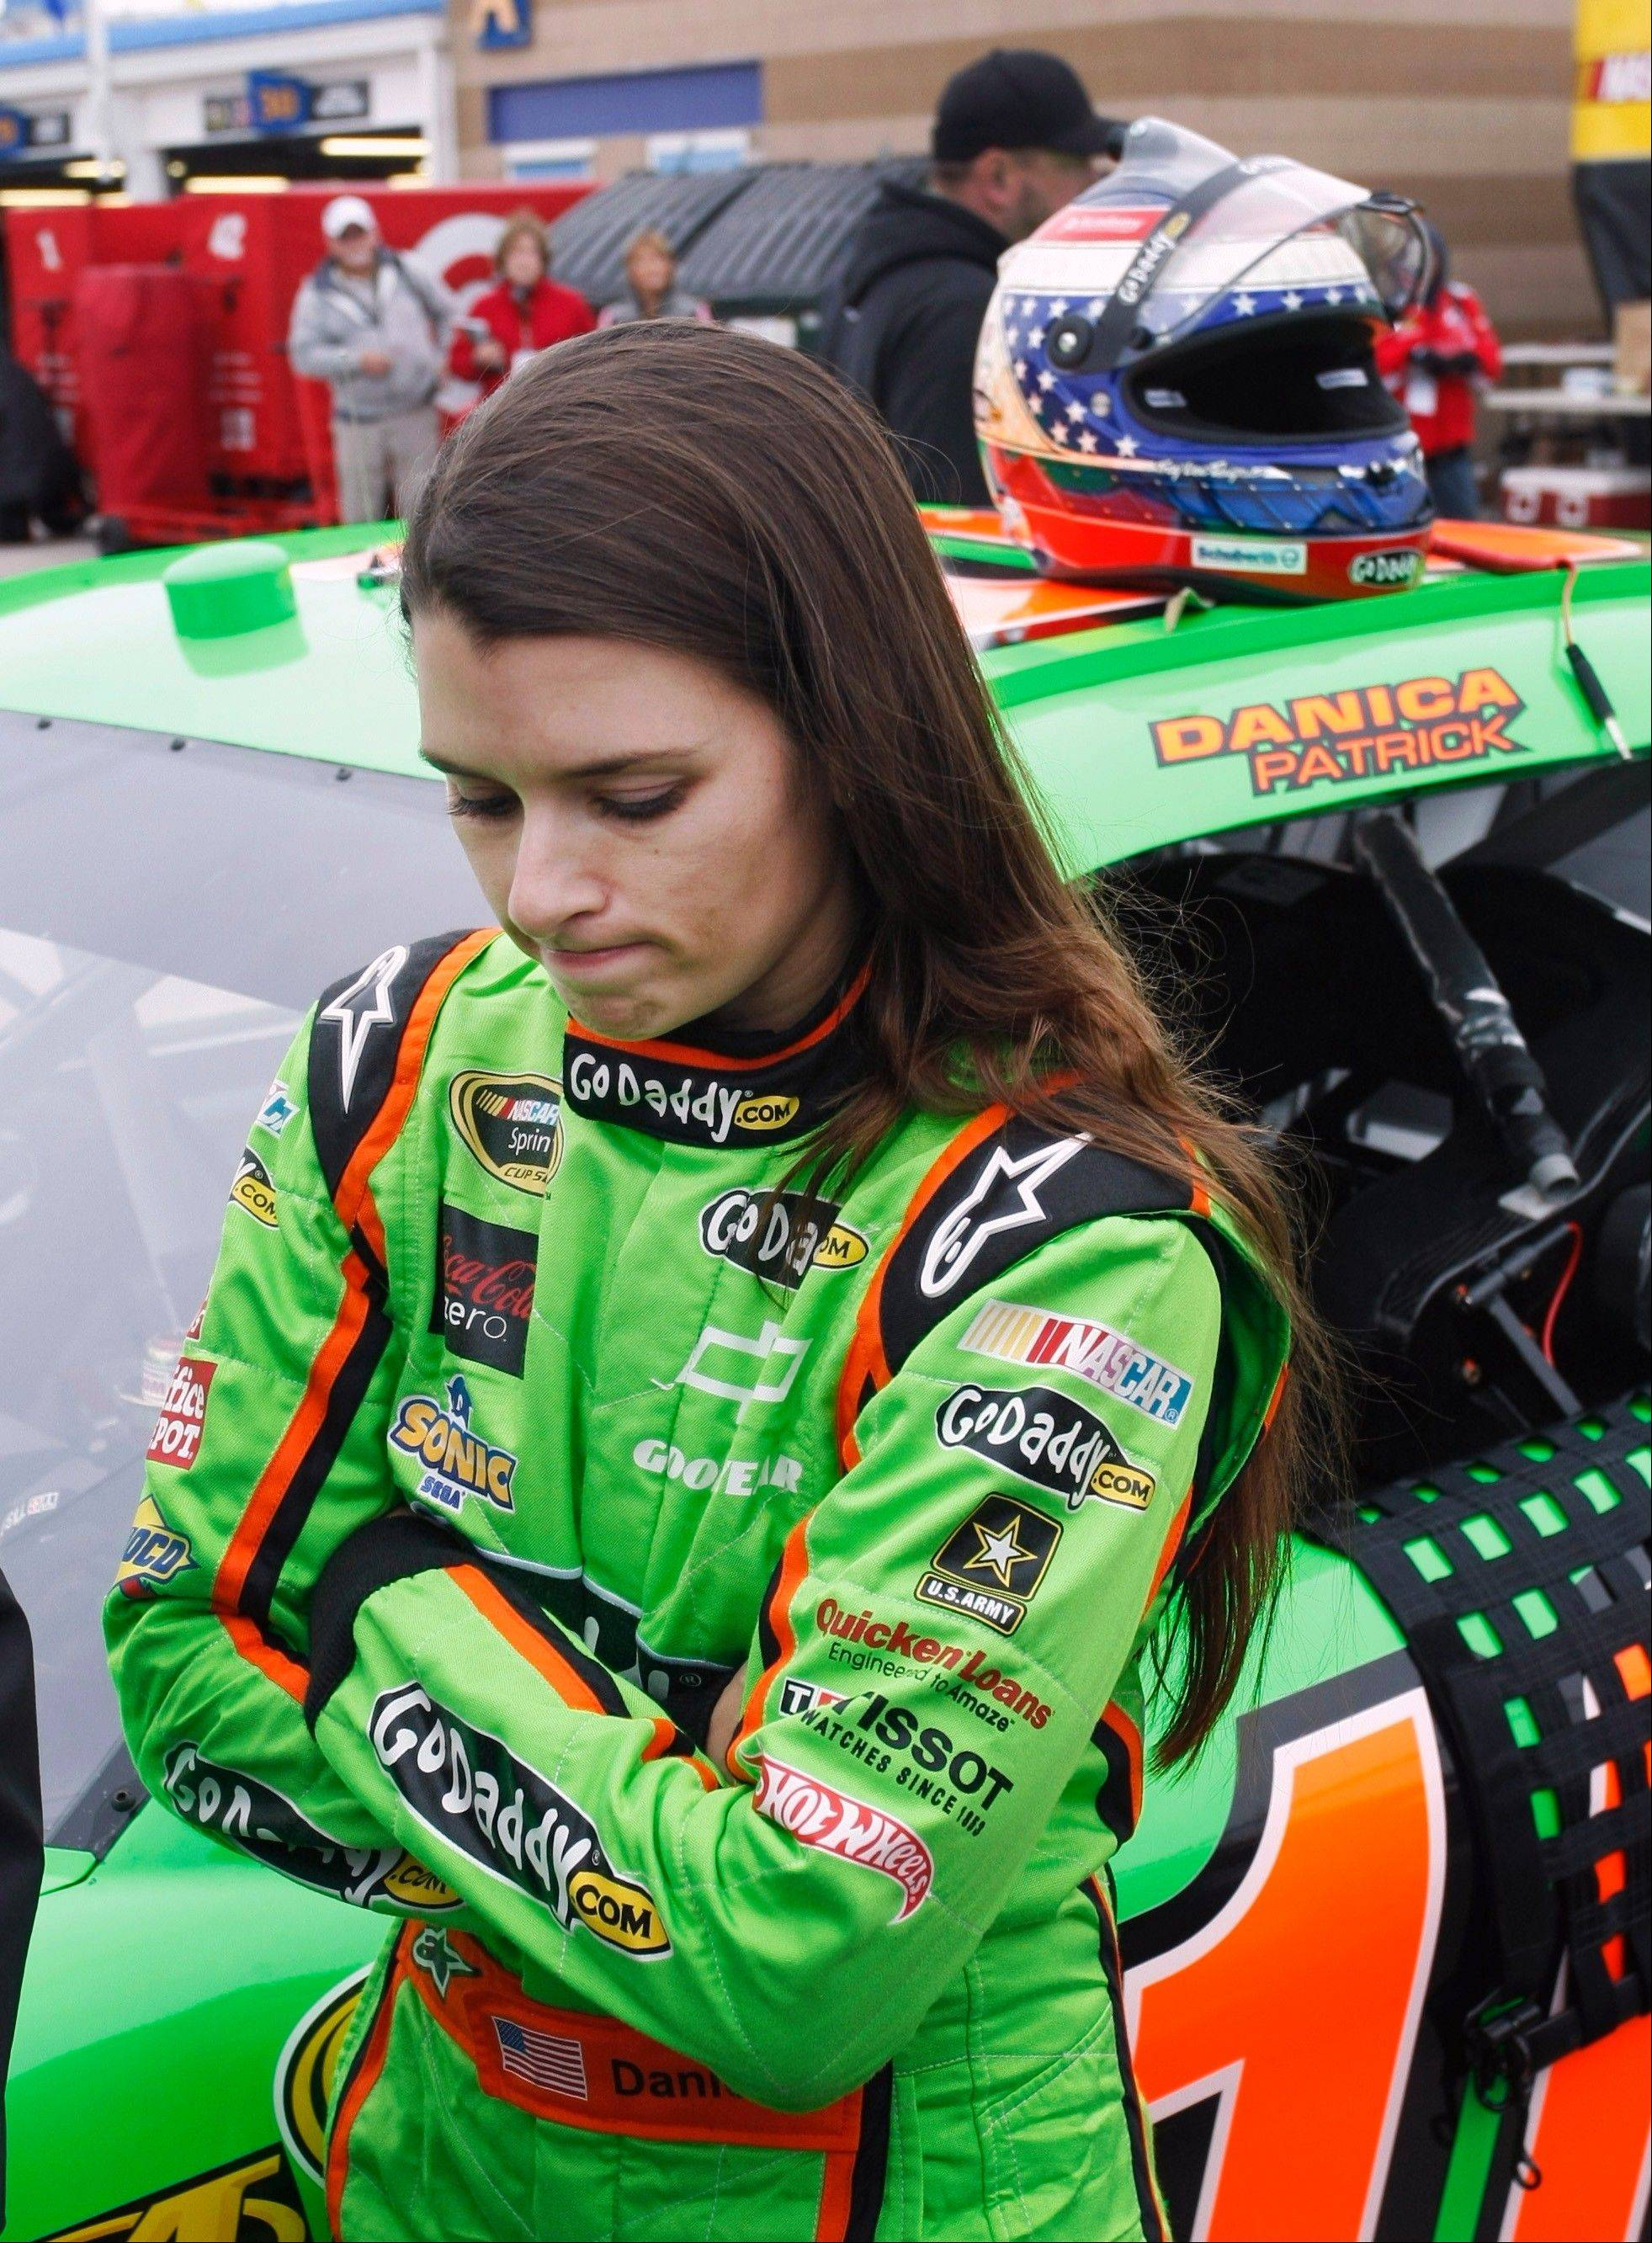 "Danica Patrick has only one regret about purposely bumping Landon Cassill in her last race. ""I still think it was important for me to stand up for myself, and I wouldn't change it,"" Patrick said Thursday. ""I would change my execution of the actual incident. I didn't do a very good job with that, but I guess there's only one way to learn, is to try. It's just not that easy to take someone out."""